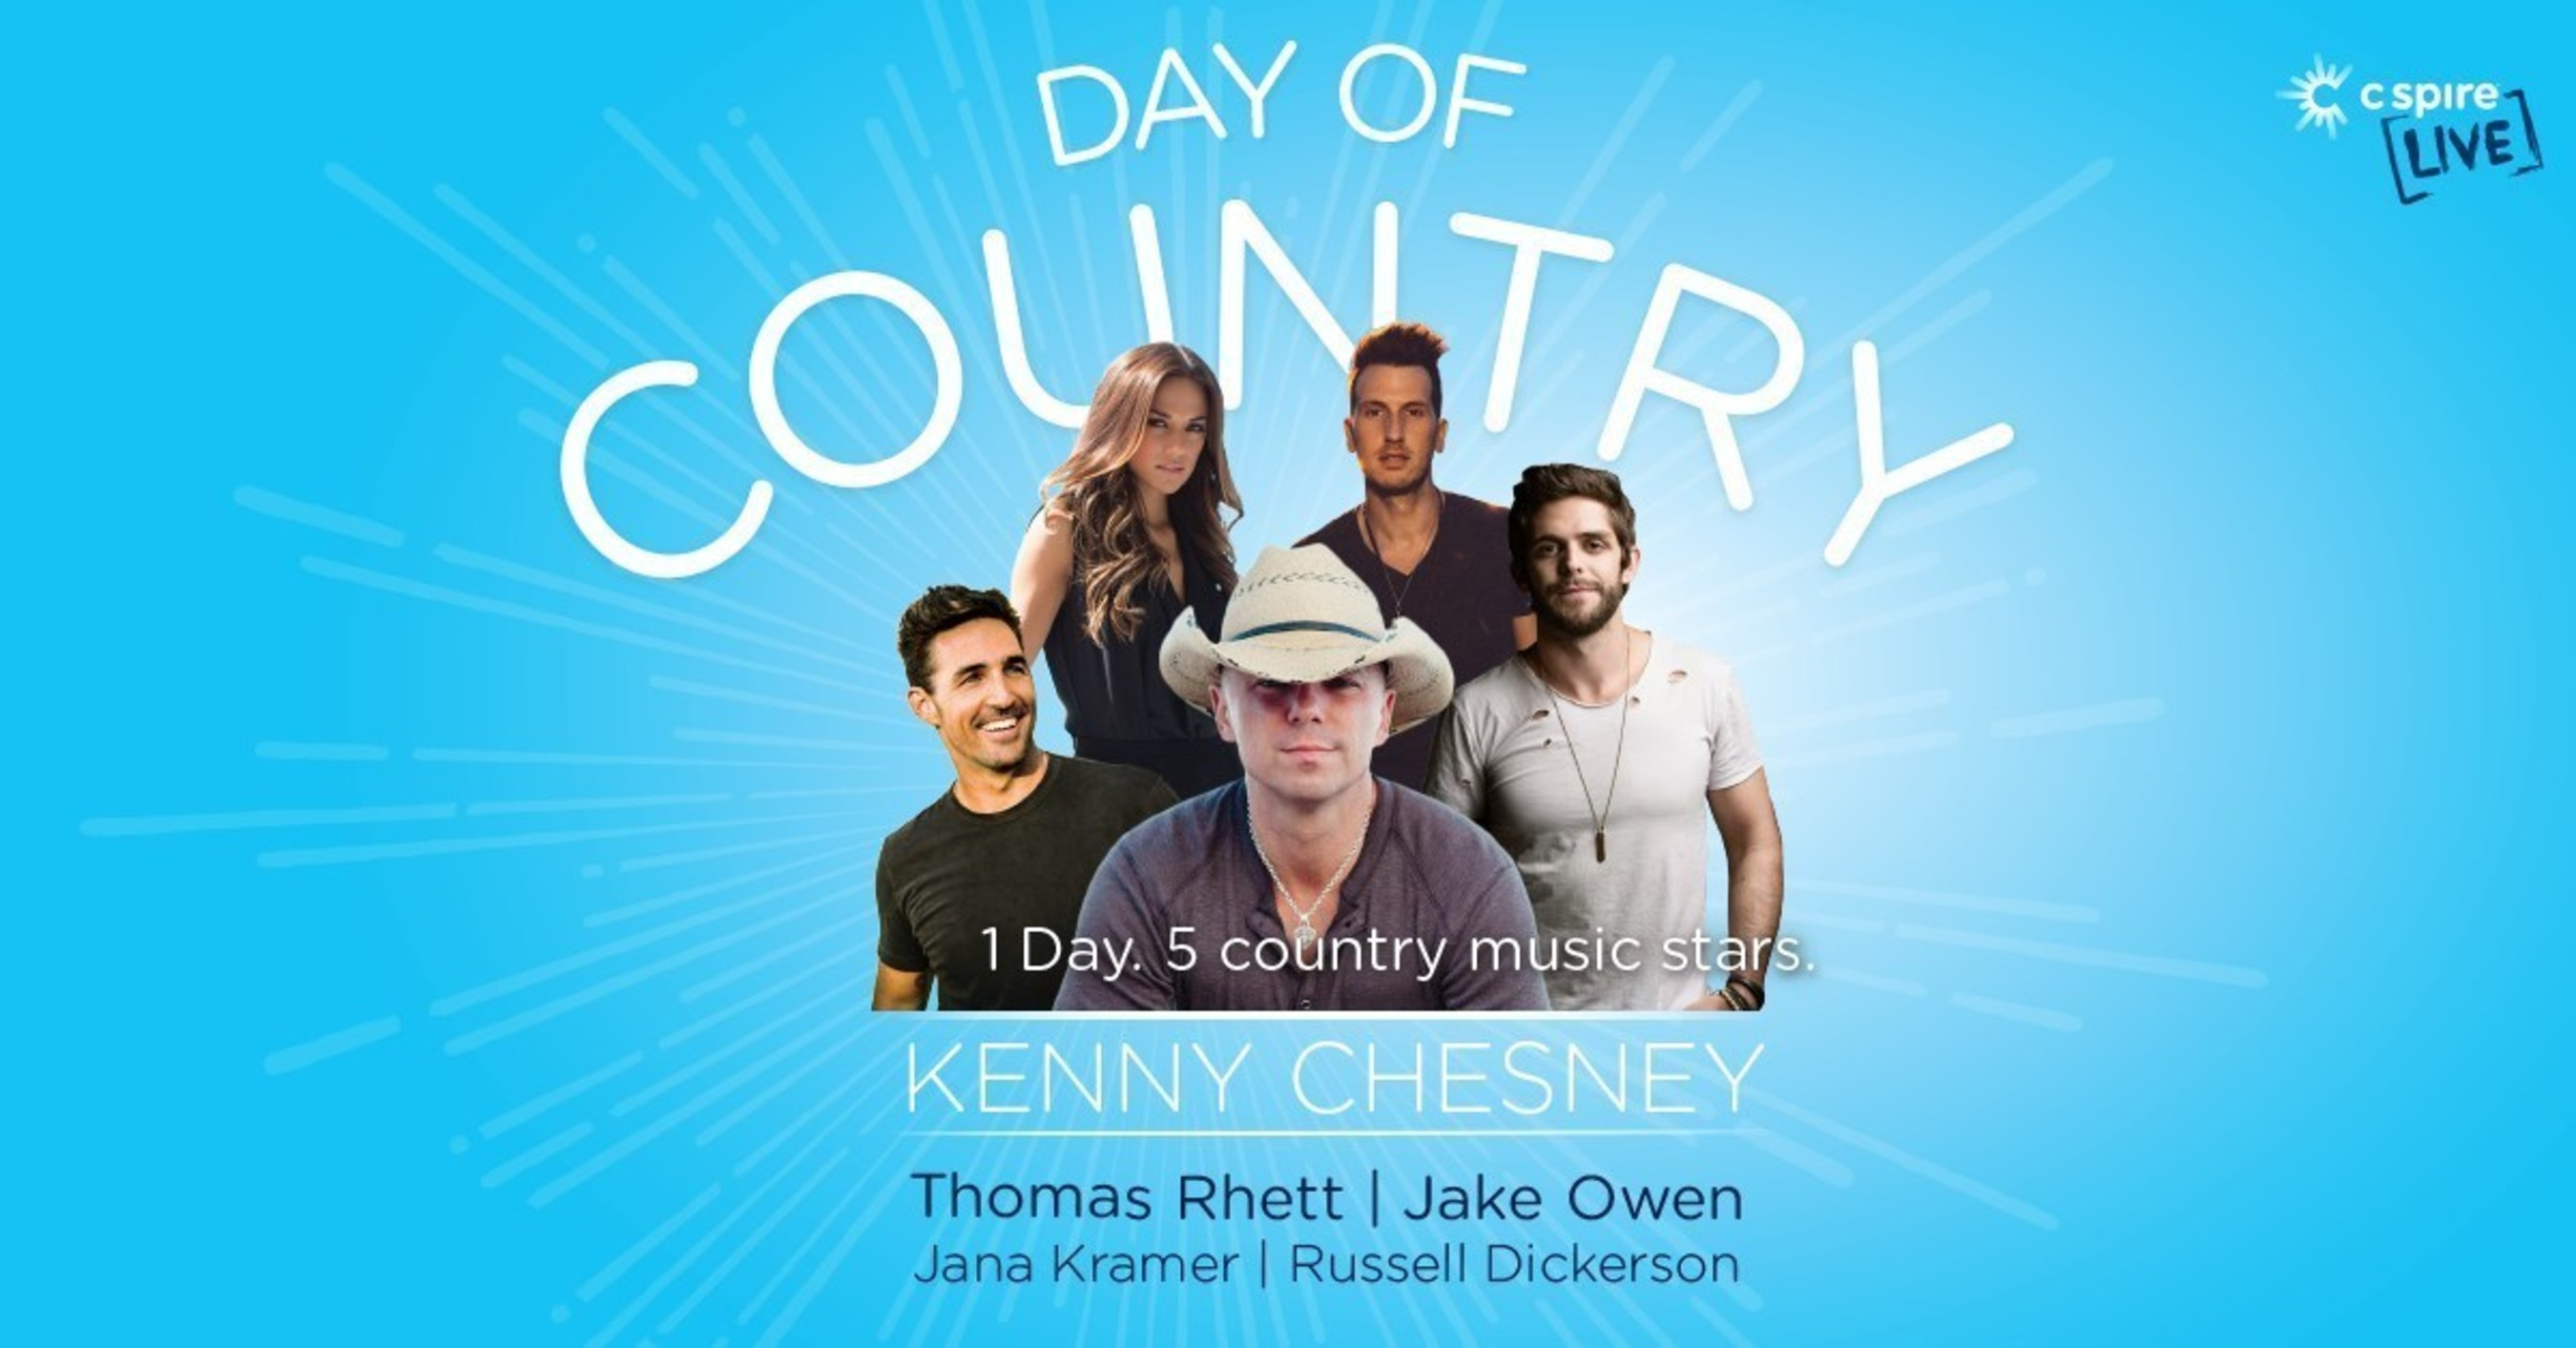 Country music superstar Kenny Chesney to headline 2017 C Spire Live concert at Baptist Health Systems campus in Madison